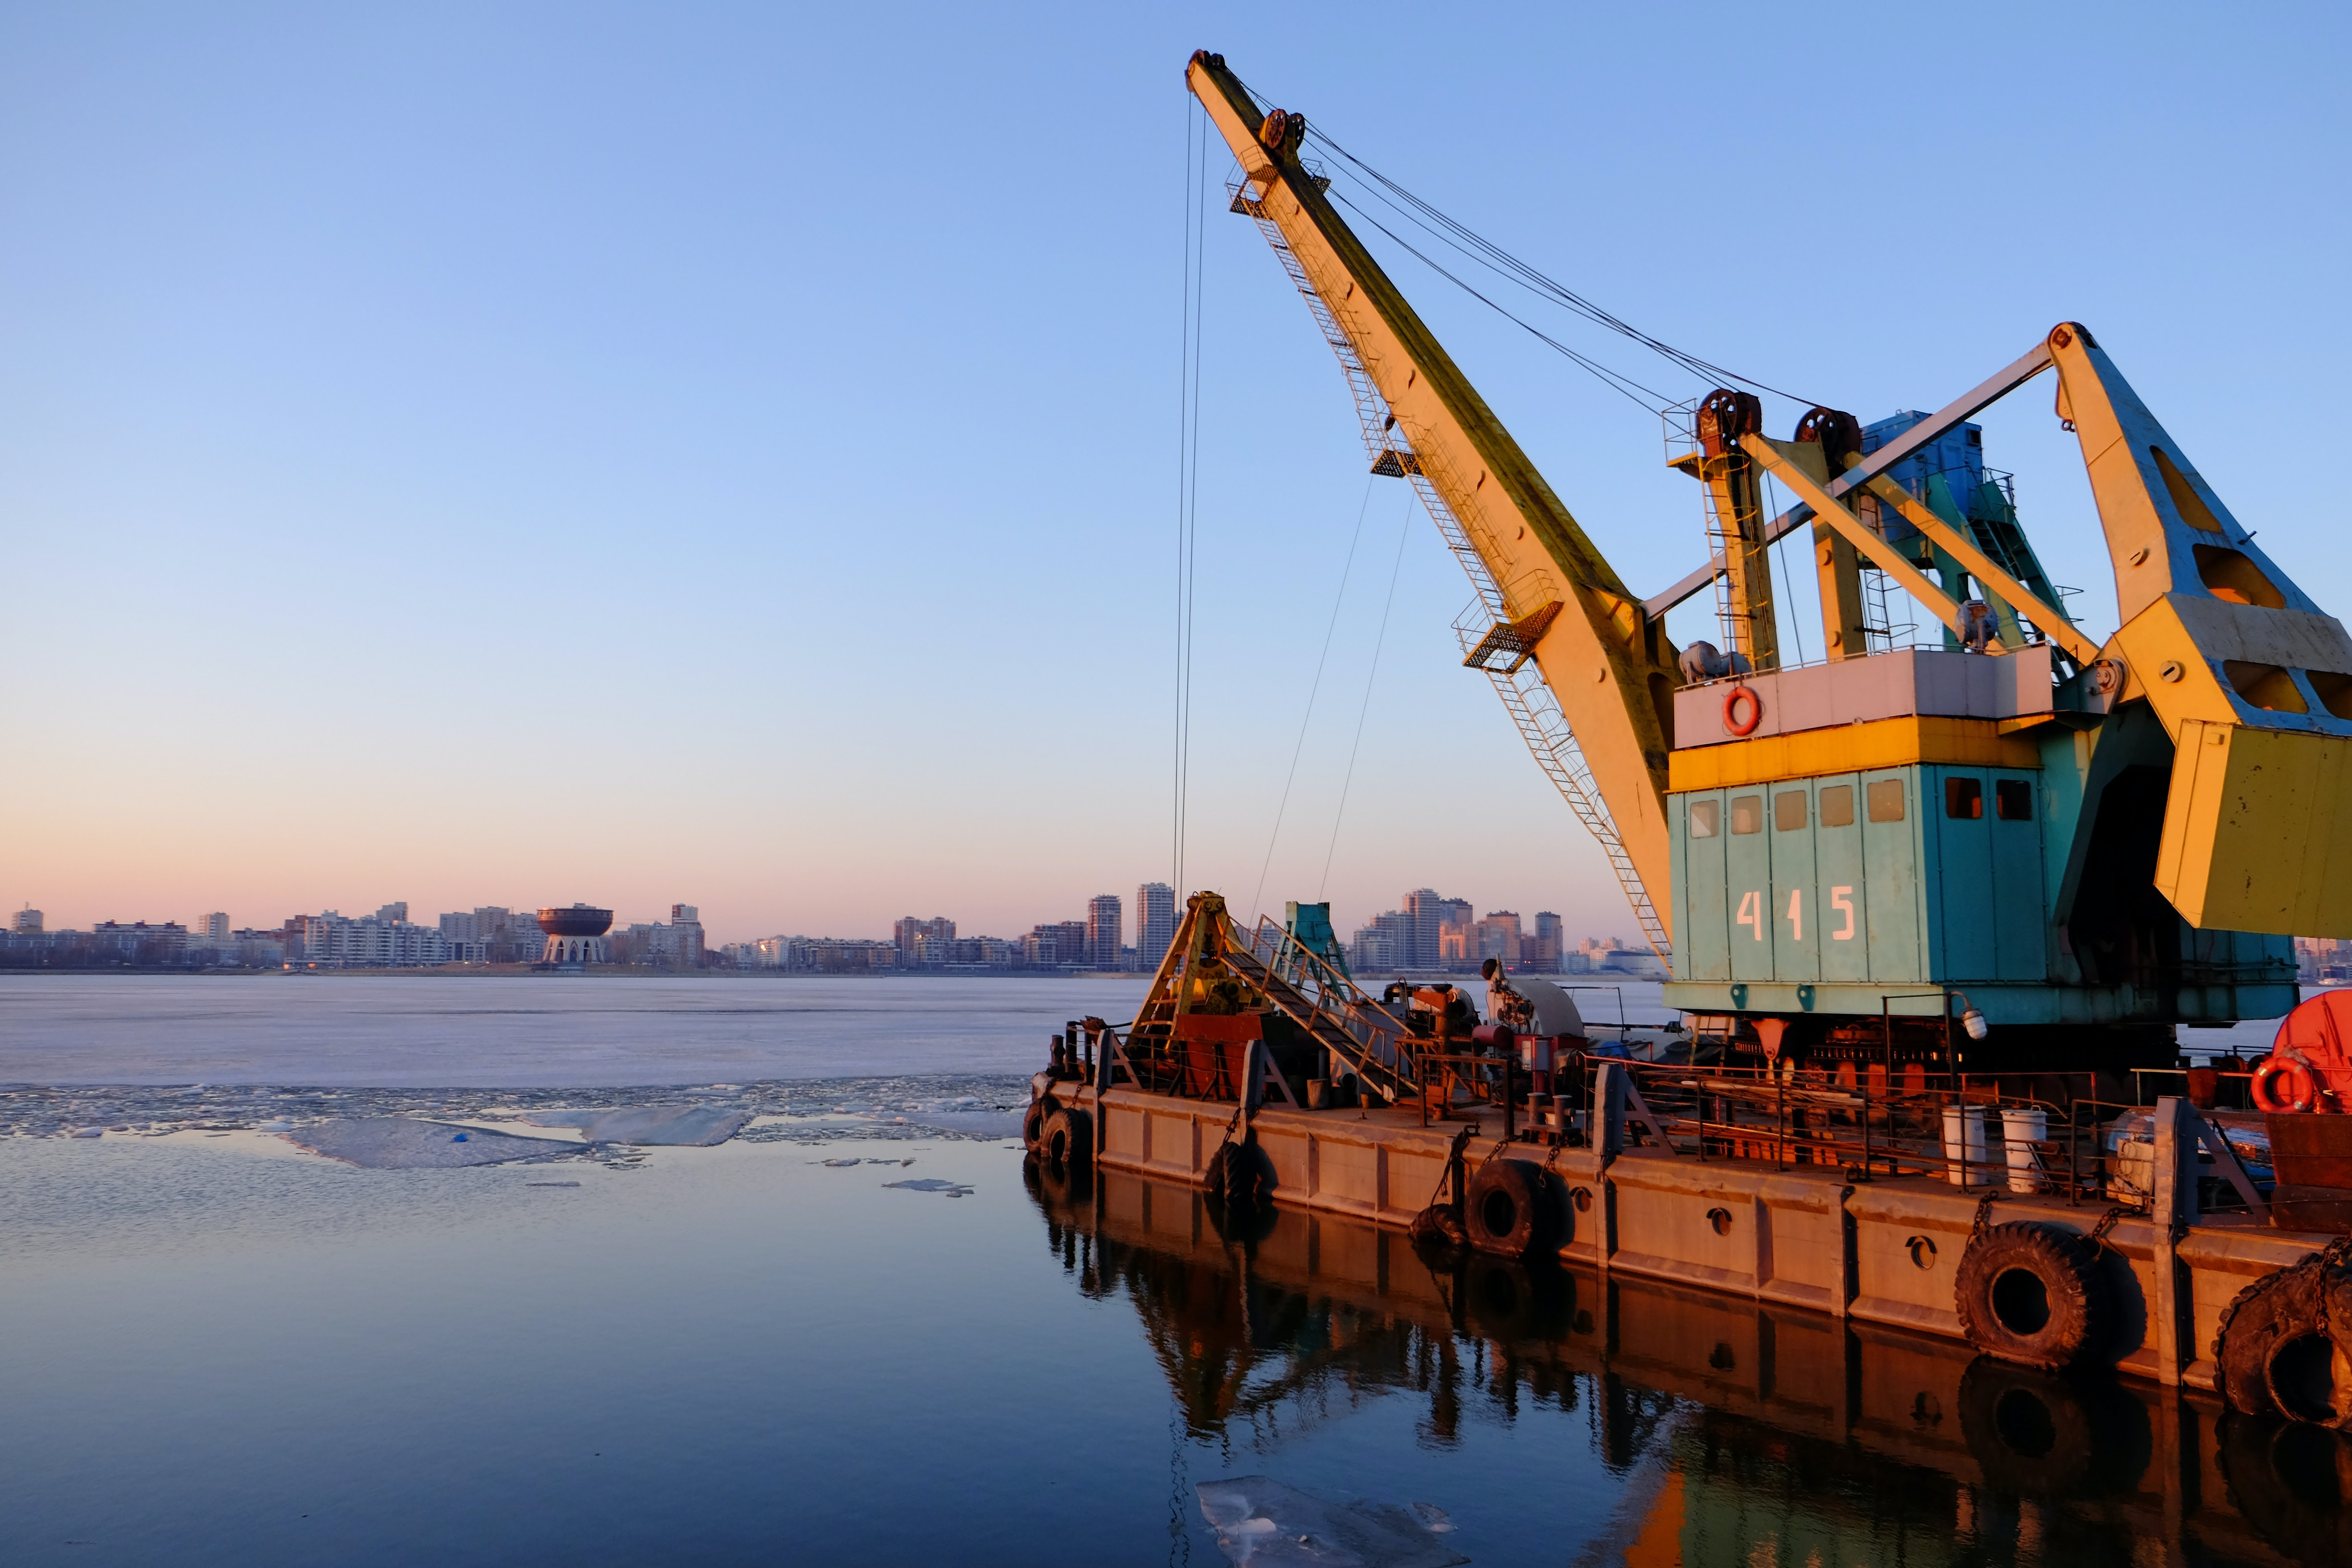 An industrial crane on a dock over the water